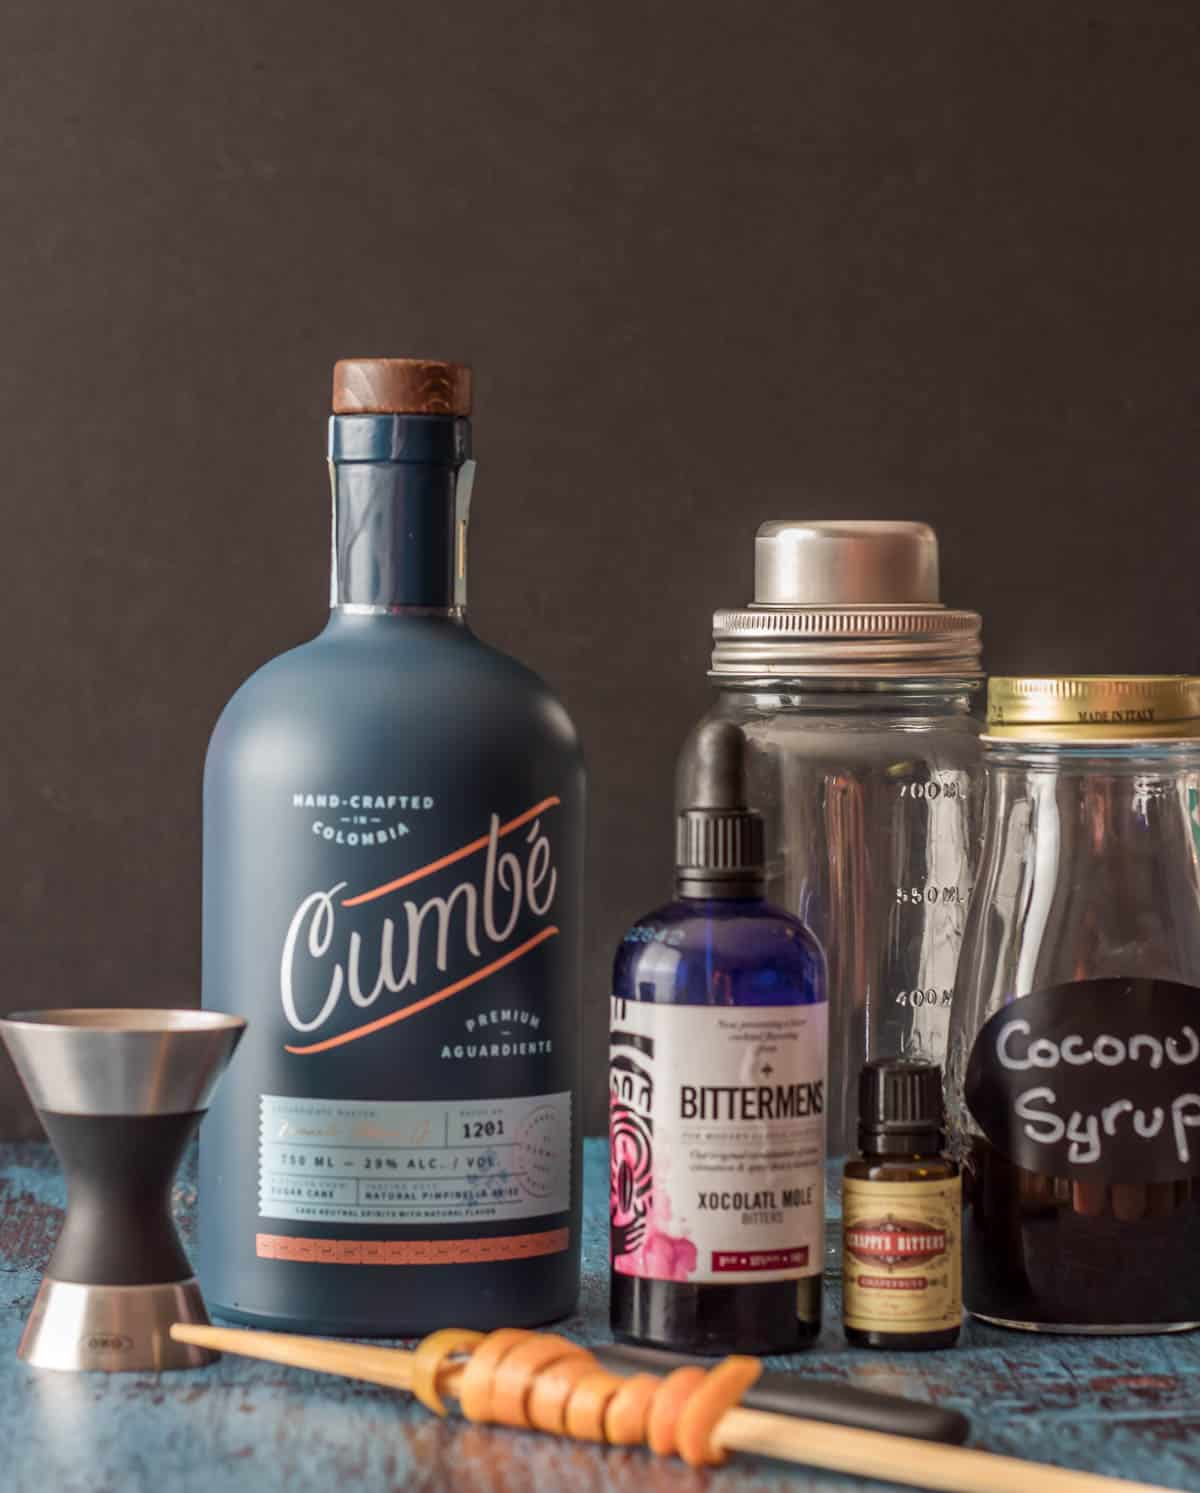 Ingredients for an aguardiente cocktail: Cumbe aguardiente, mole bitters, grapefruit bitters, coconut syrup, grapefruit twist.